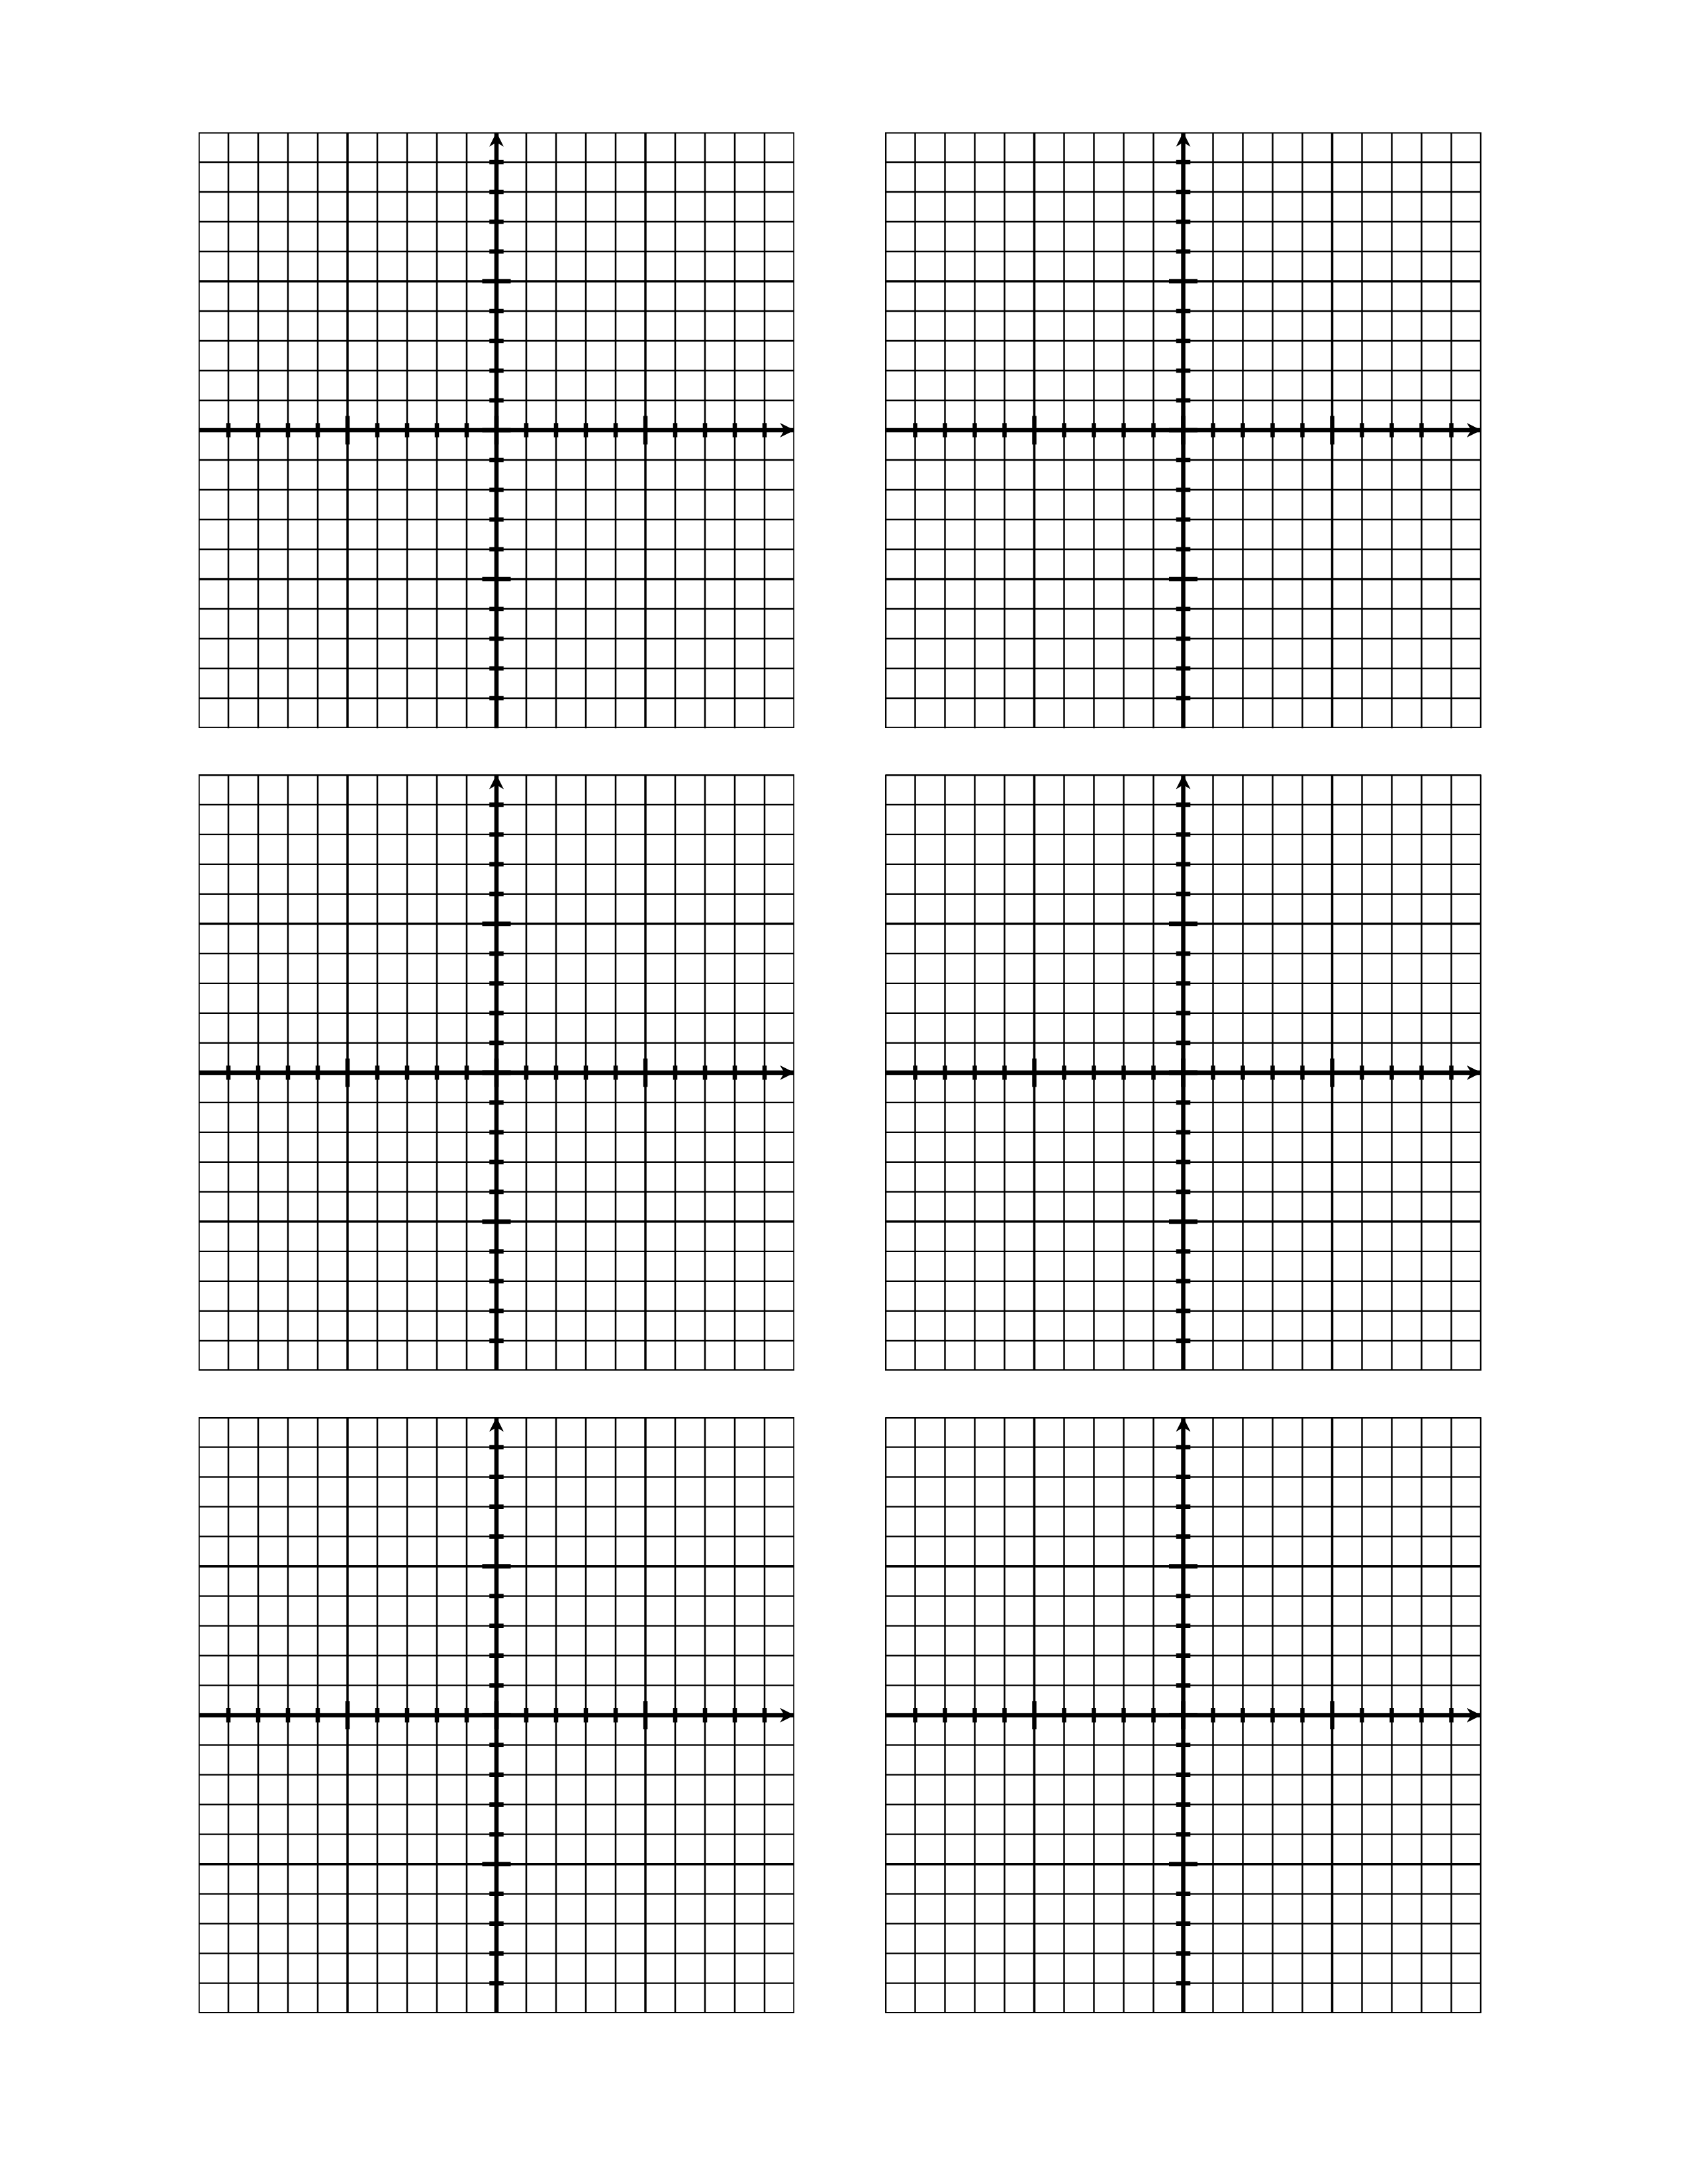 Free printable grid graph paper templates at allbusinesstemplates printable grid graph paper main image download template maxwellsz